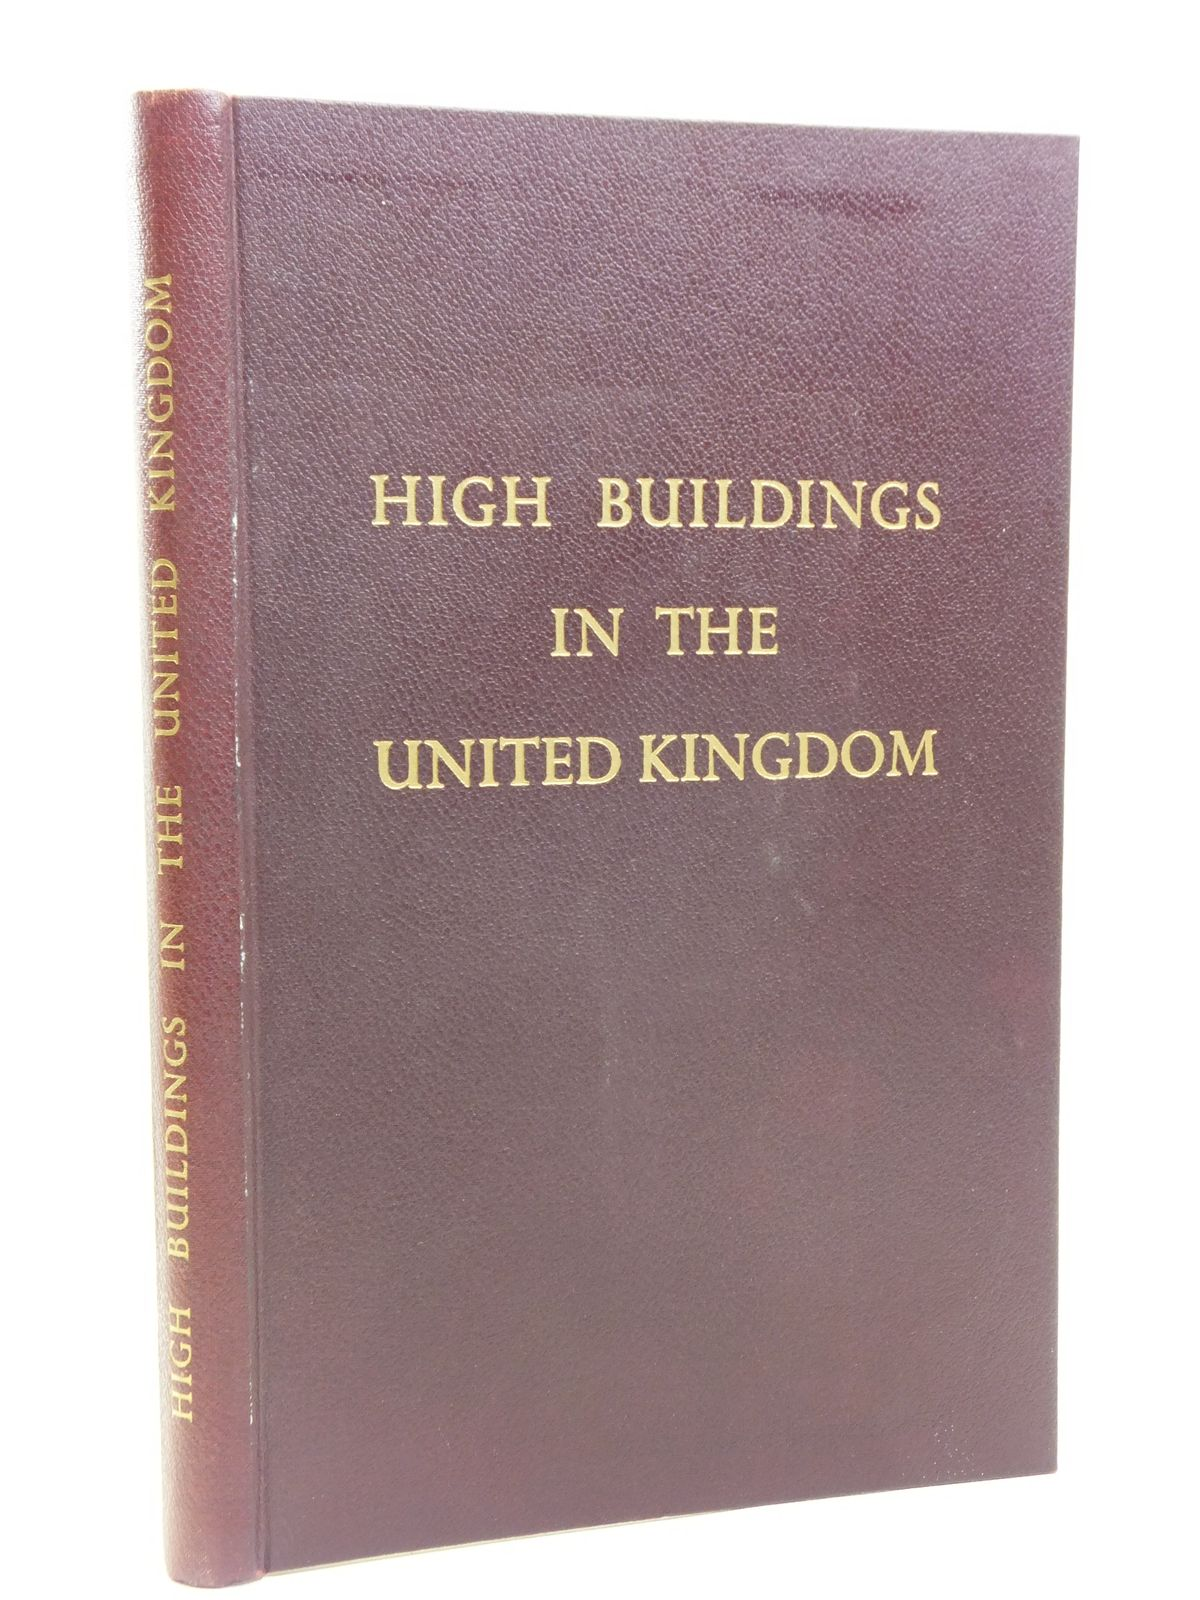 Photo of HIGH BUILDINGS IN THE UNITED KINGDOM published by Sanders, Phillips & Co. Ltd. (STOCK CODE: 2120676)  for sale by Stella & Rose's Books